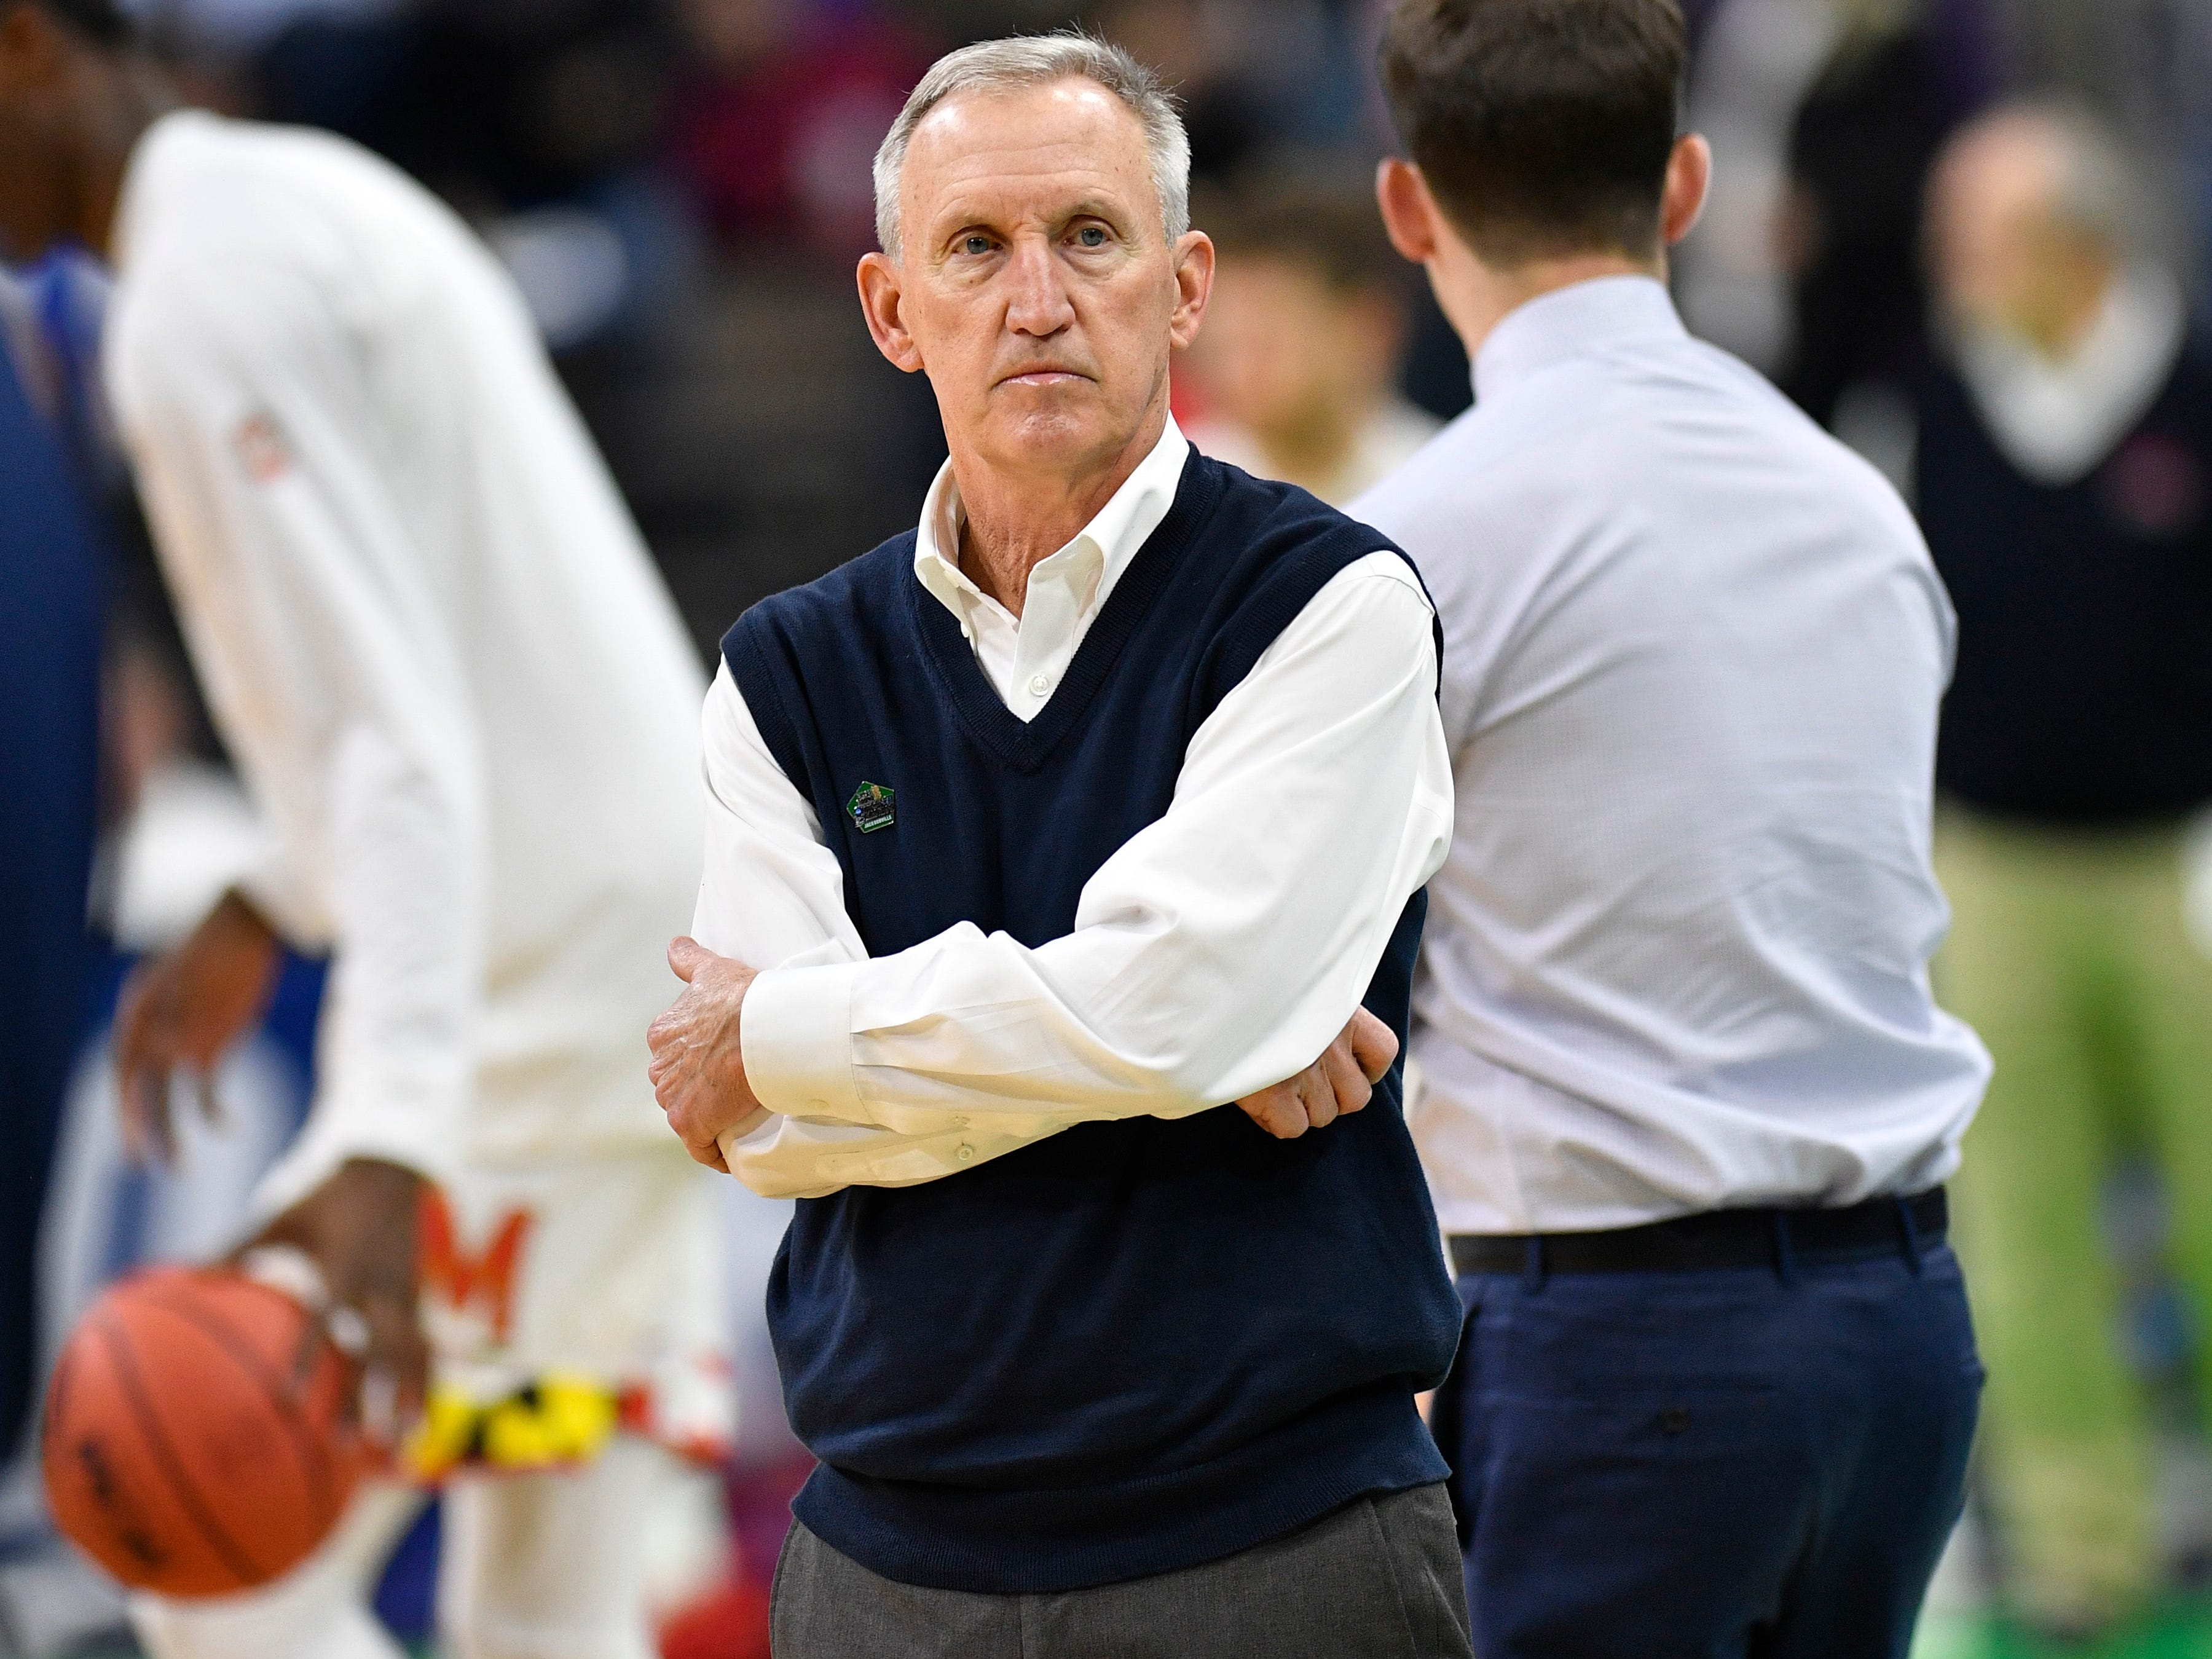 Belmont head coach Rick Byrd watches warmups before the start of the first-round NCAA college basketball tournament game against Maryland at VyStar Veterans Memorial Arena in Jacksonville, Fla., Thursday, March 21, 2019.